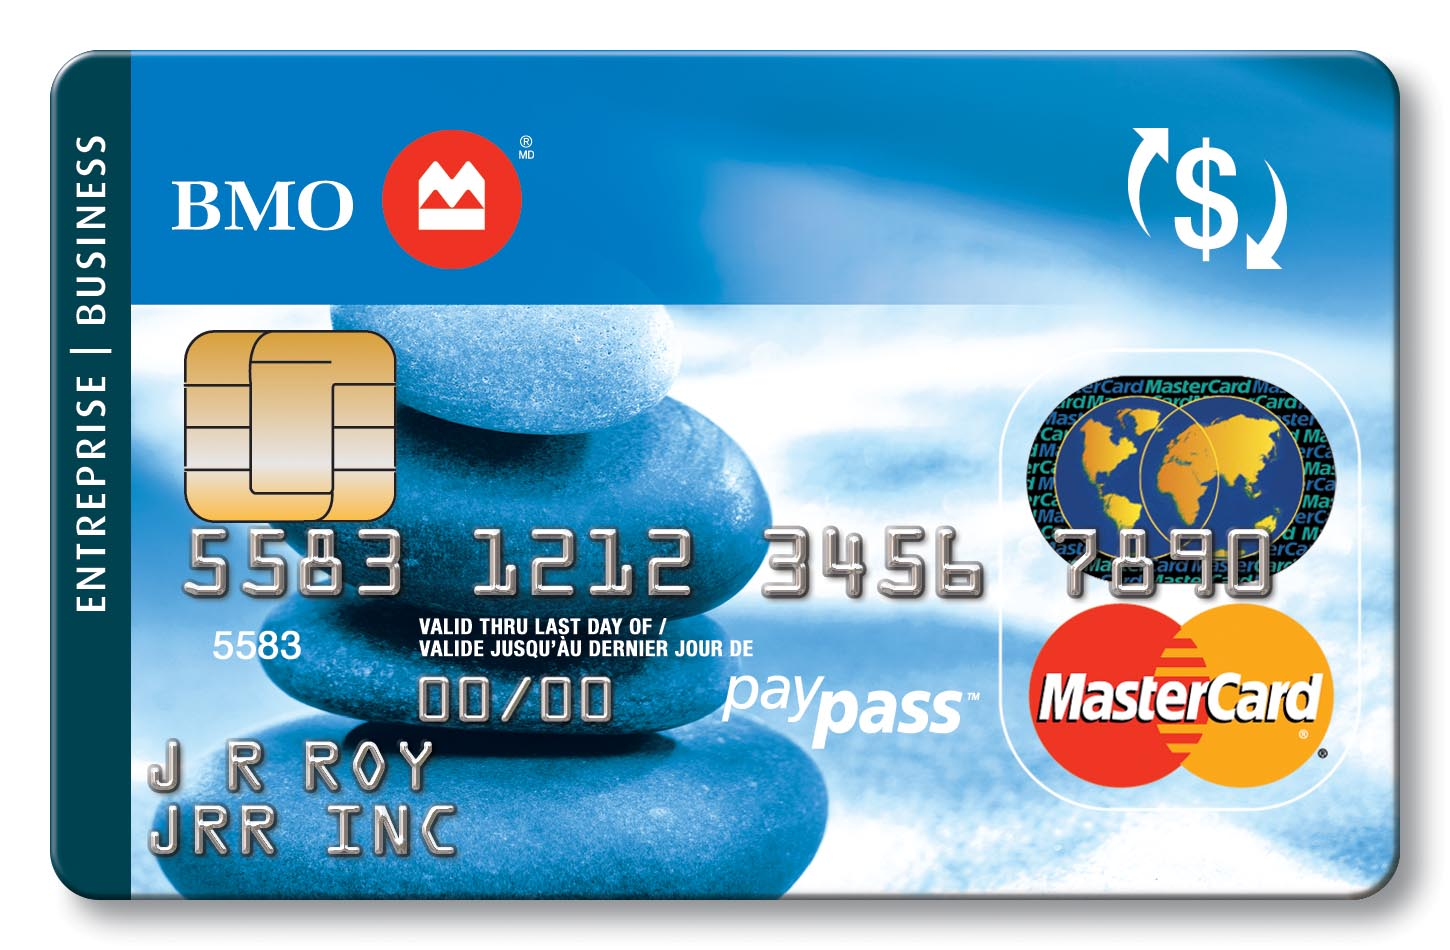 Cashback mastercard business credit cards bmo mandegarfo cashback mastercard business credit cards bmo reheart Choice Image